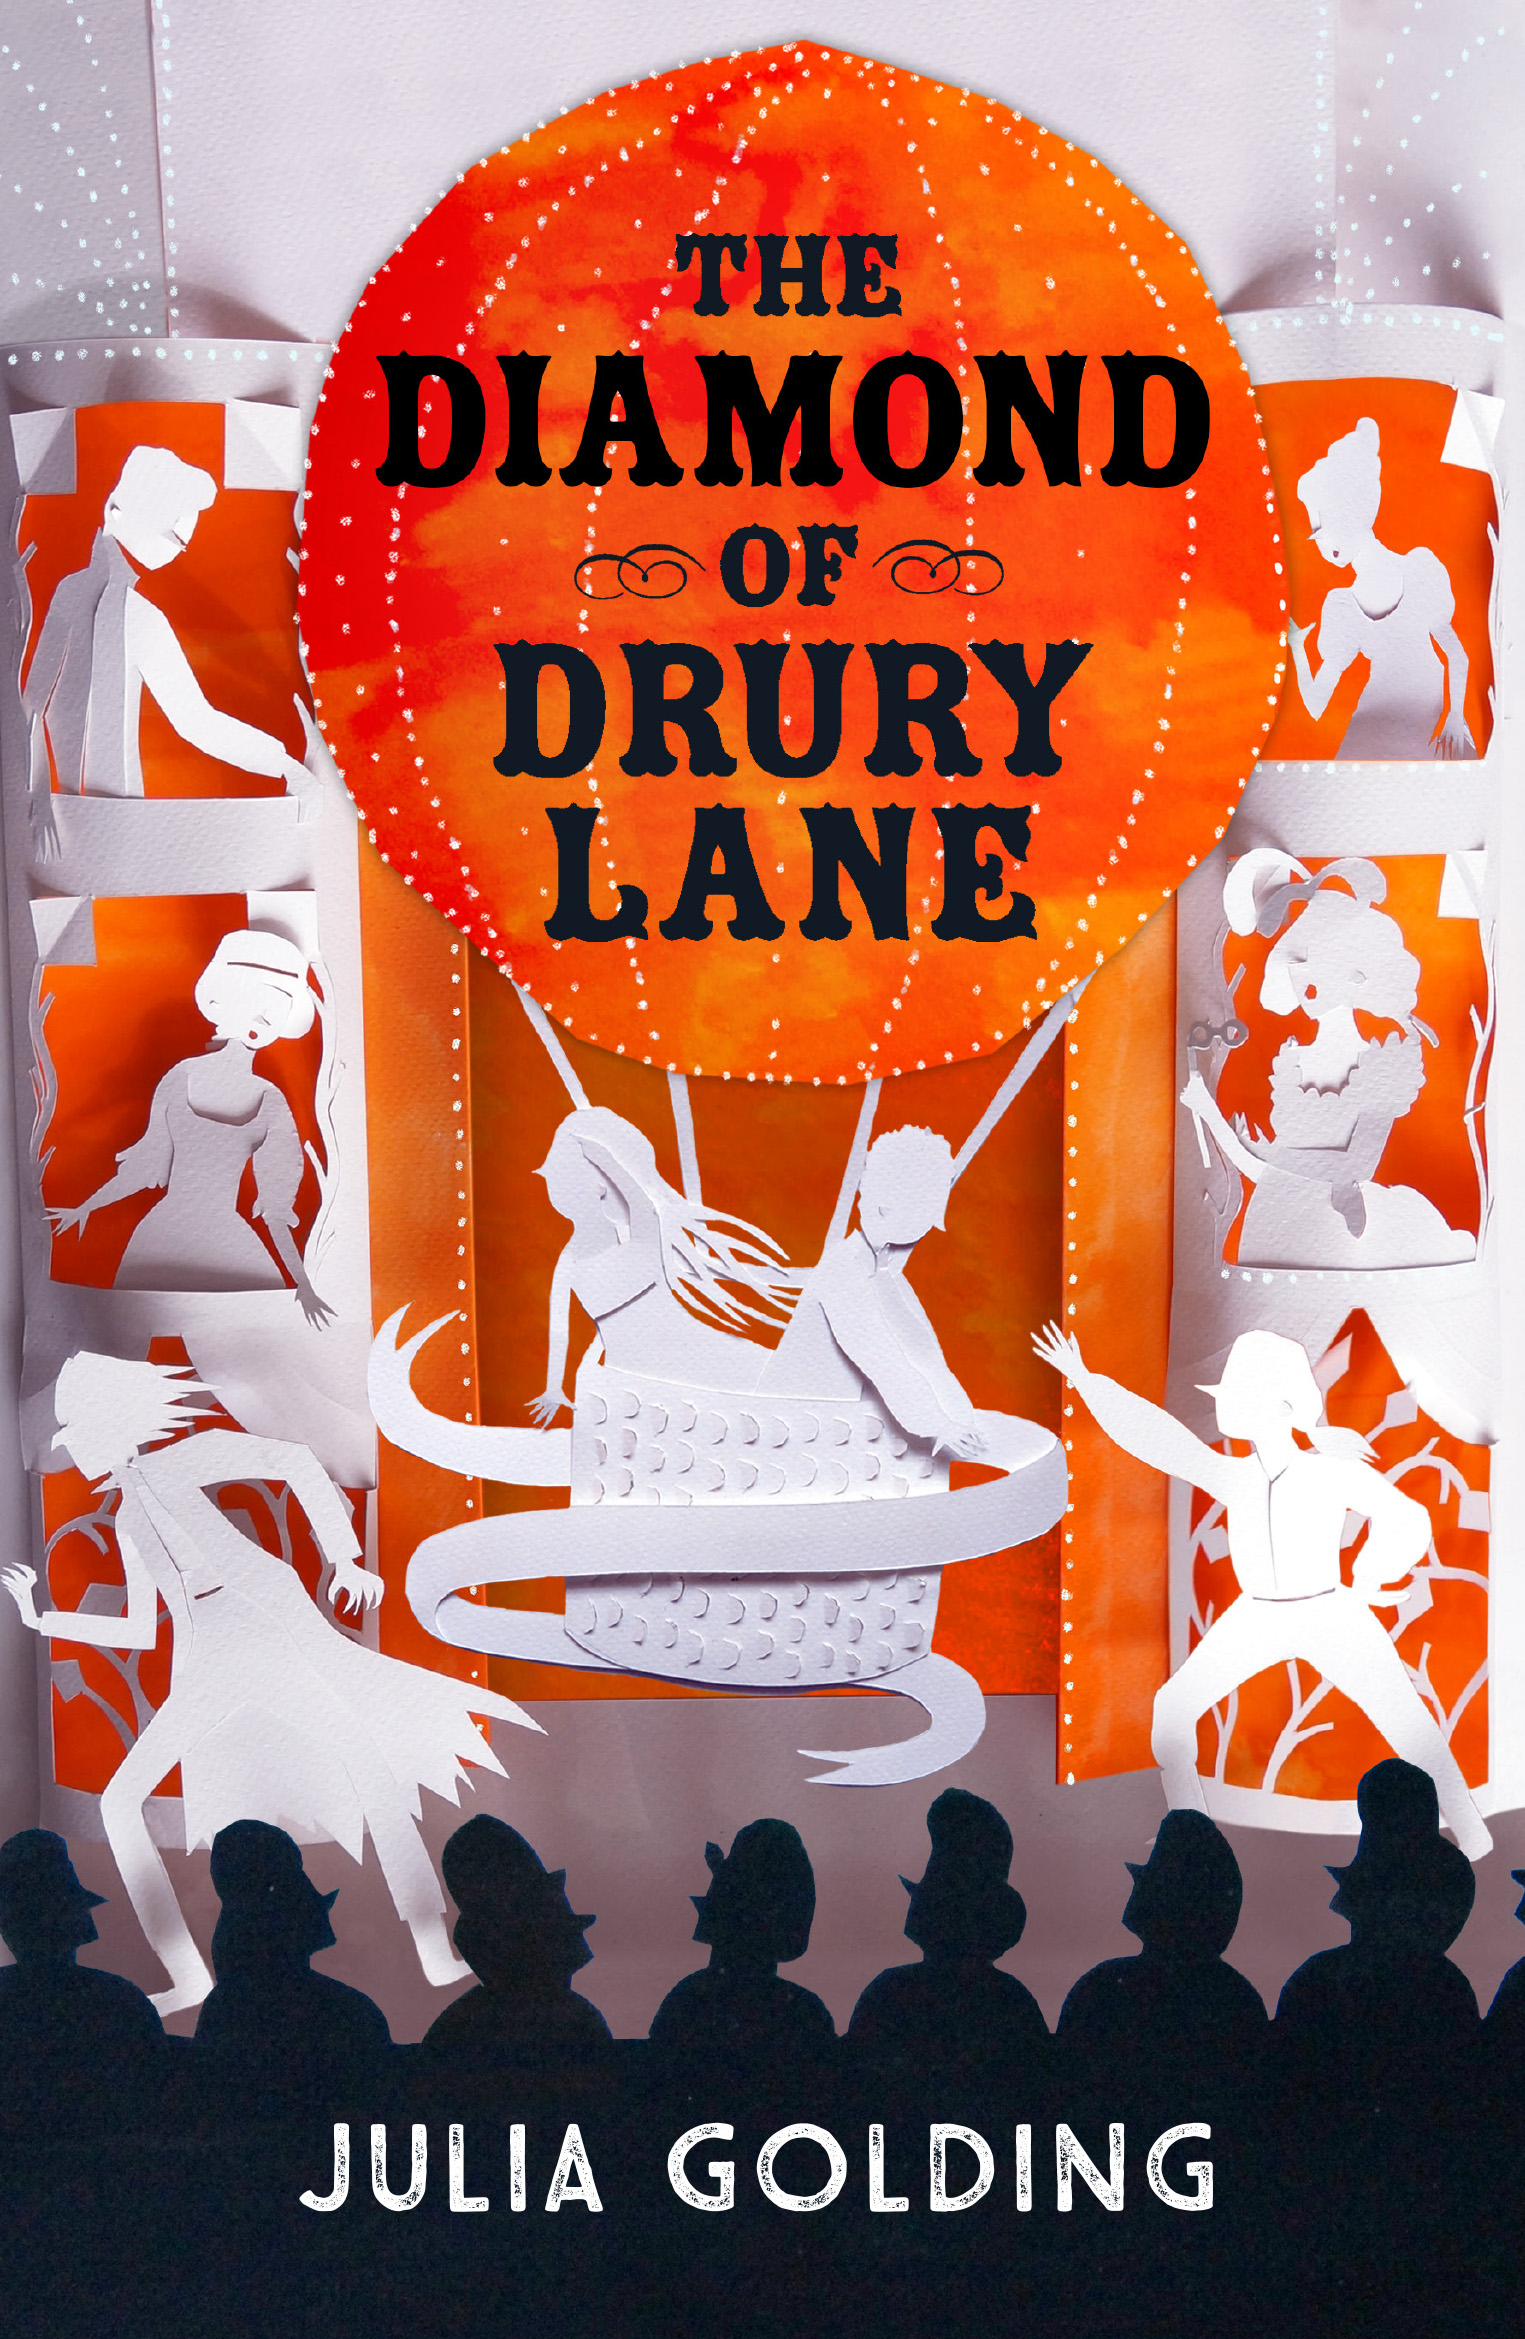 DIAMOND_DRURY LANE A